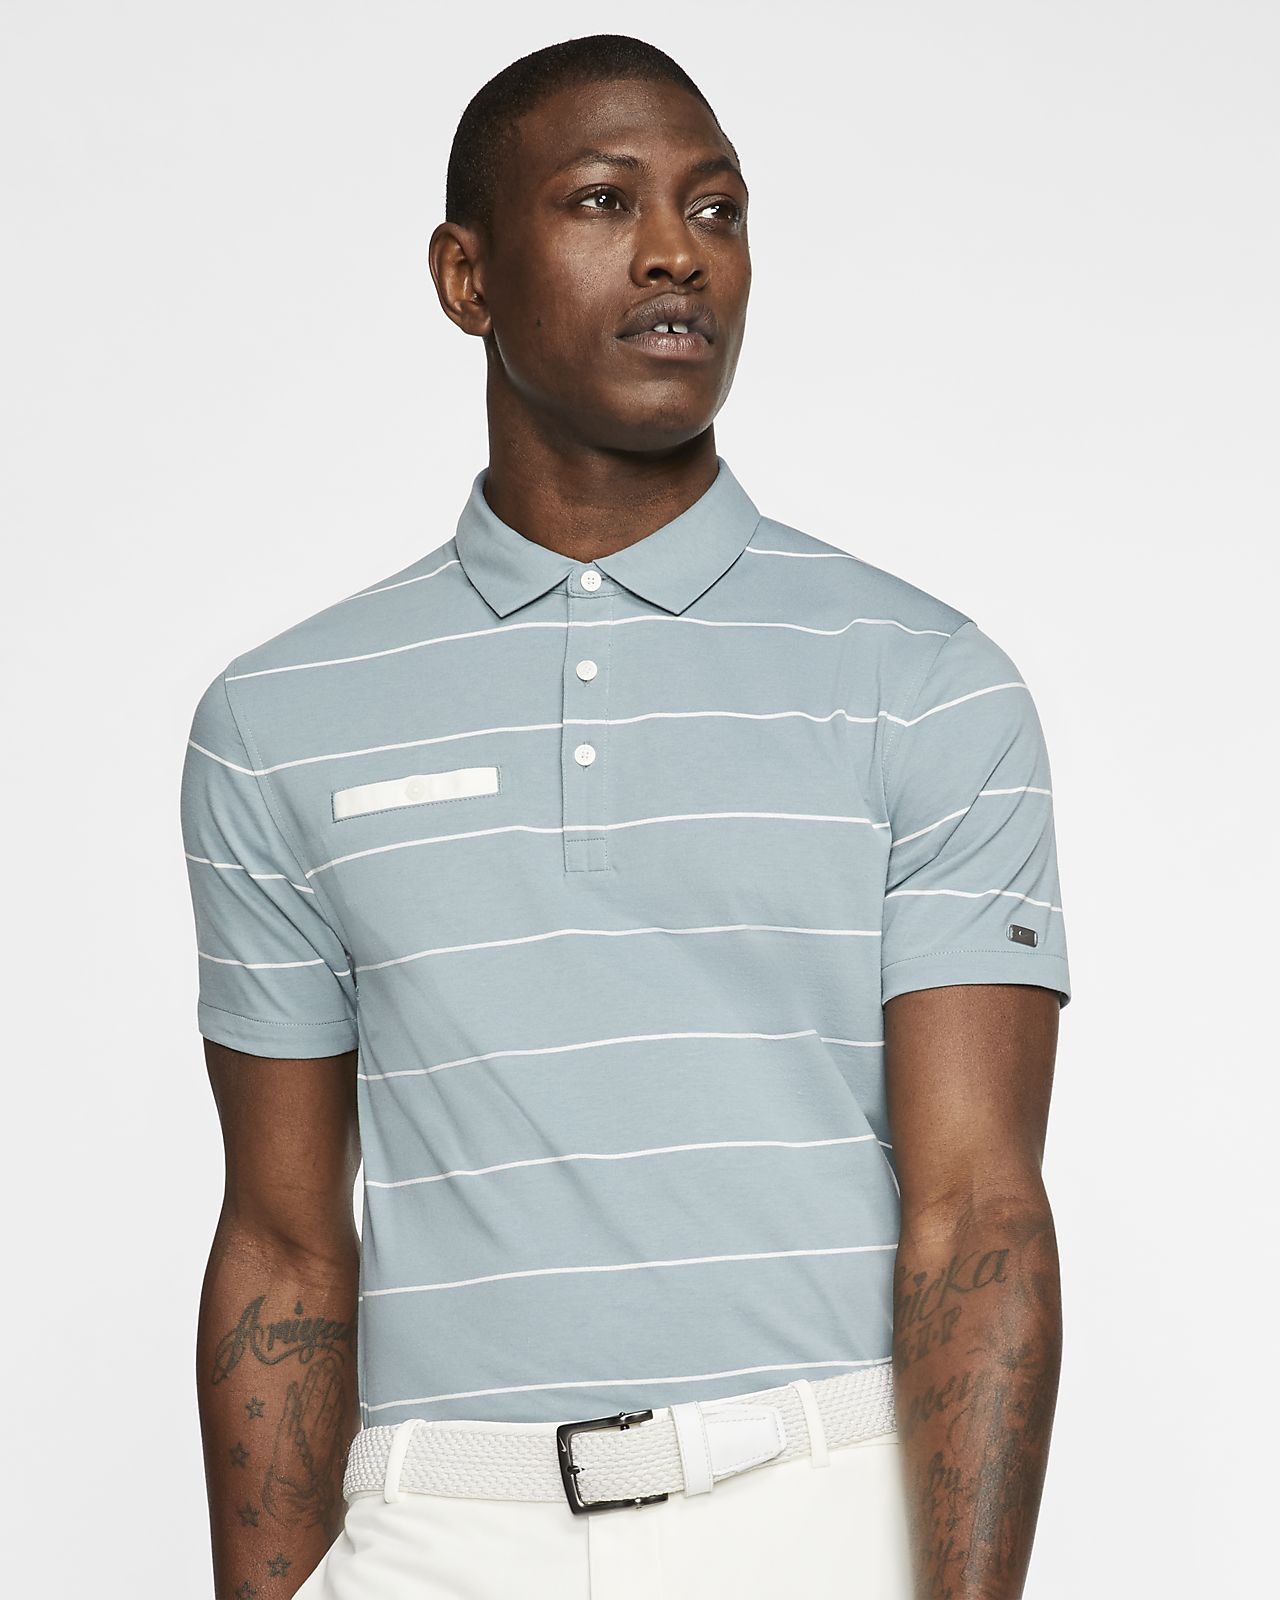 Nike Dri-FIT Player Men's Striped Golf Polo